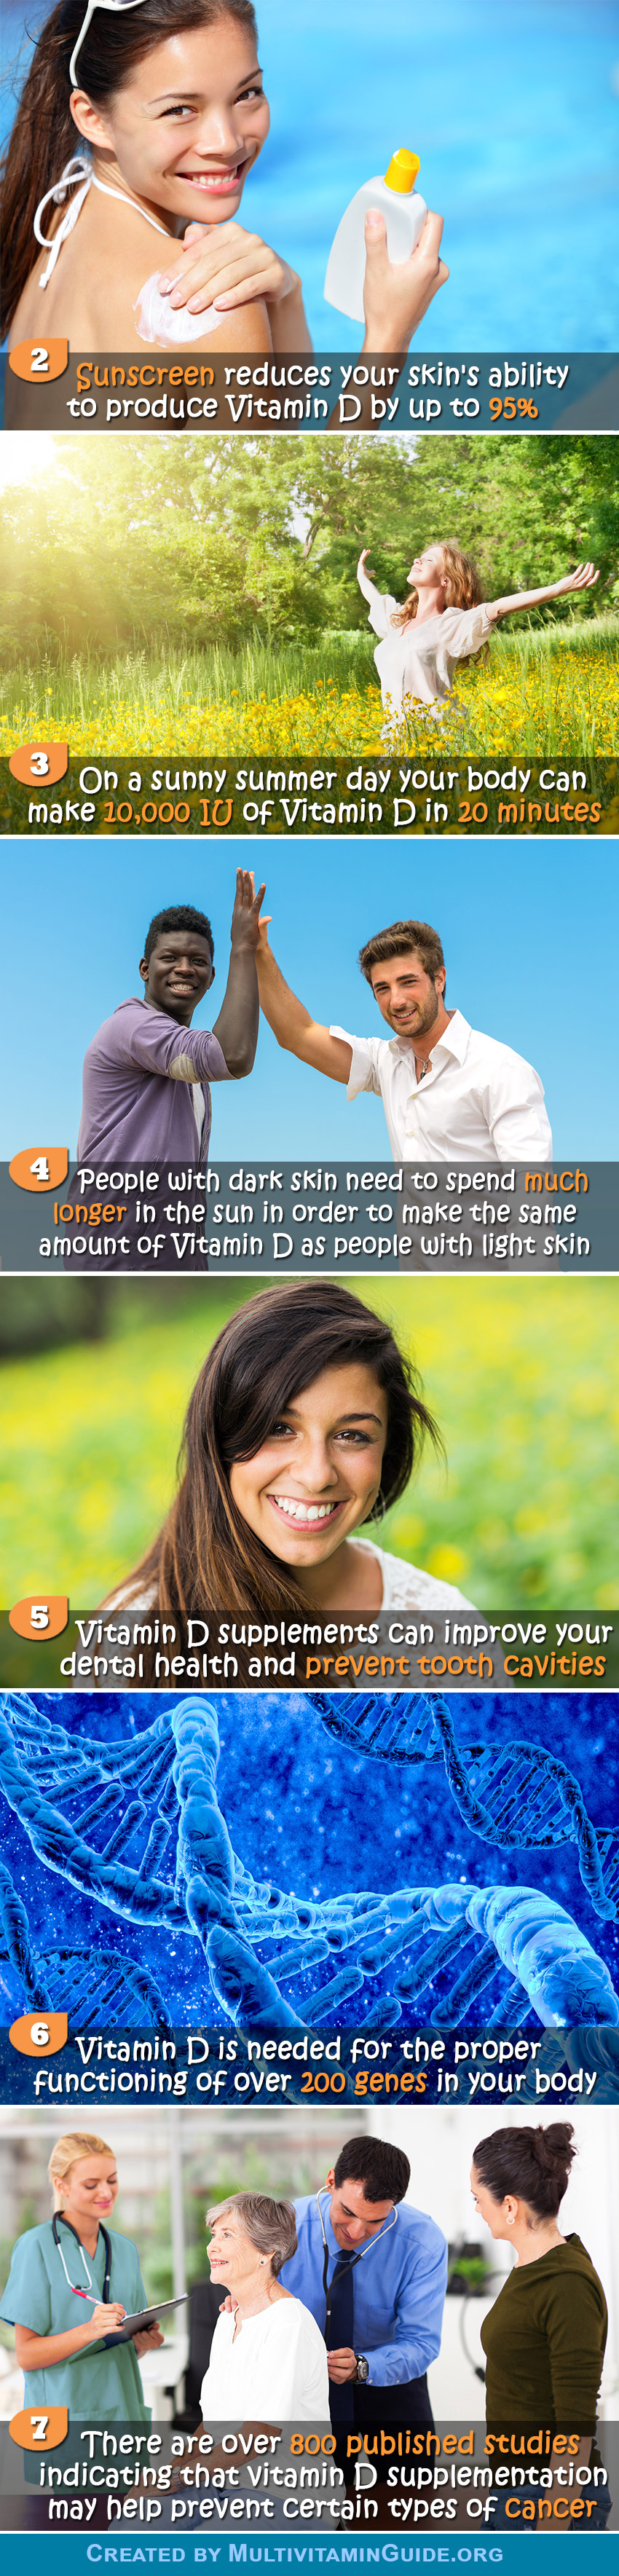 2) Sunscreen reduces your skin's ability to produce Vitamin D by up to 95%. 3) On a sunny summer day your body can make 10,000 IU of Vitamin D in 20 minutes. 4) People with dark skin need to spend much longer in the sun in order to make the same amount of Vitamin D as people with light skin. 5) Vitamin D supplements can improve your dental health and prevent tooth cavities. 6) Vitamin D is needed for the proper functioning of over 200 genes in your body. 7) There are over 800 published studies indicating that vitamin D supplementation may help prevent certain types of cancer.